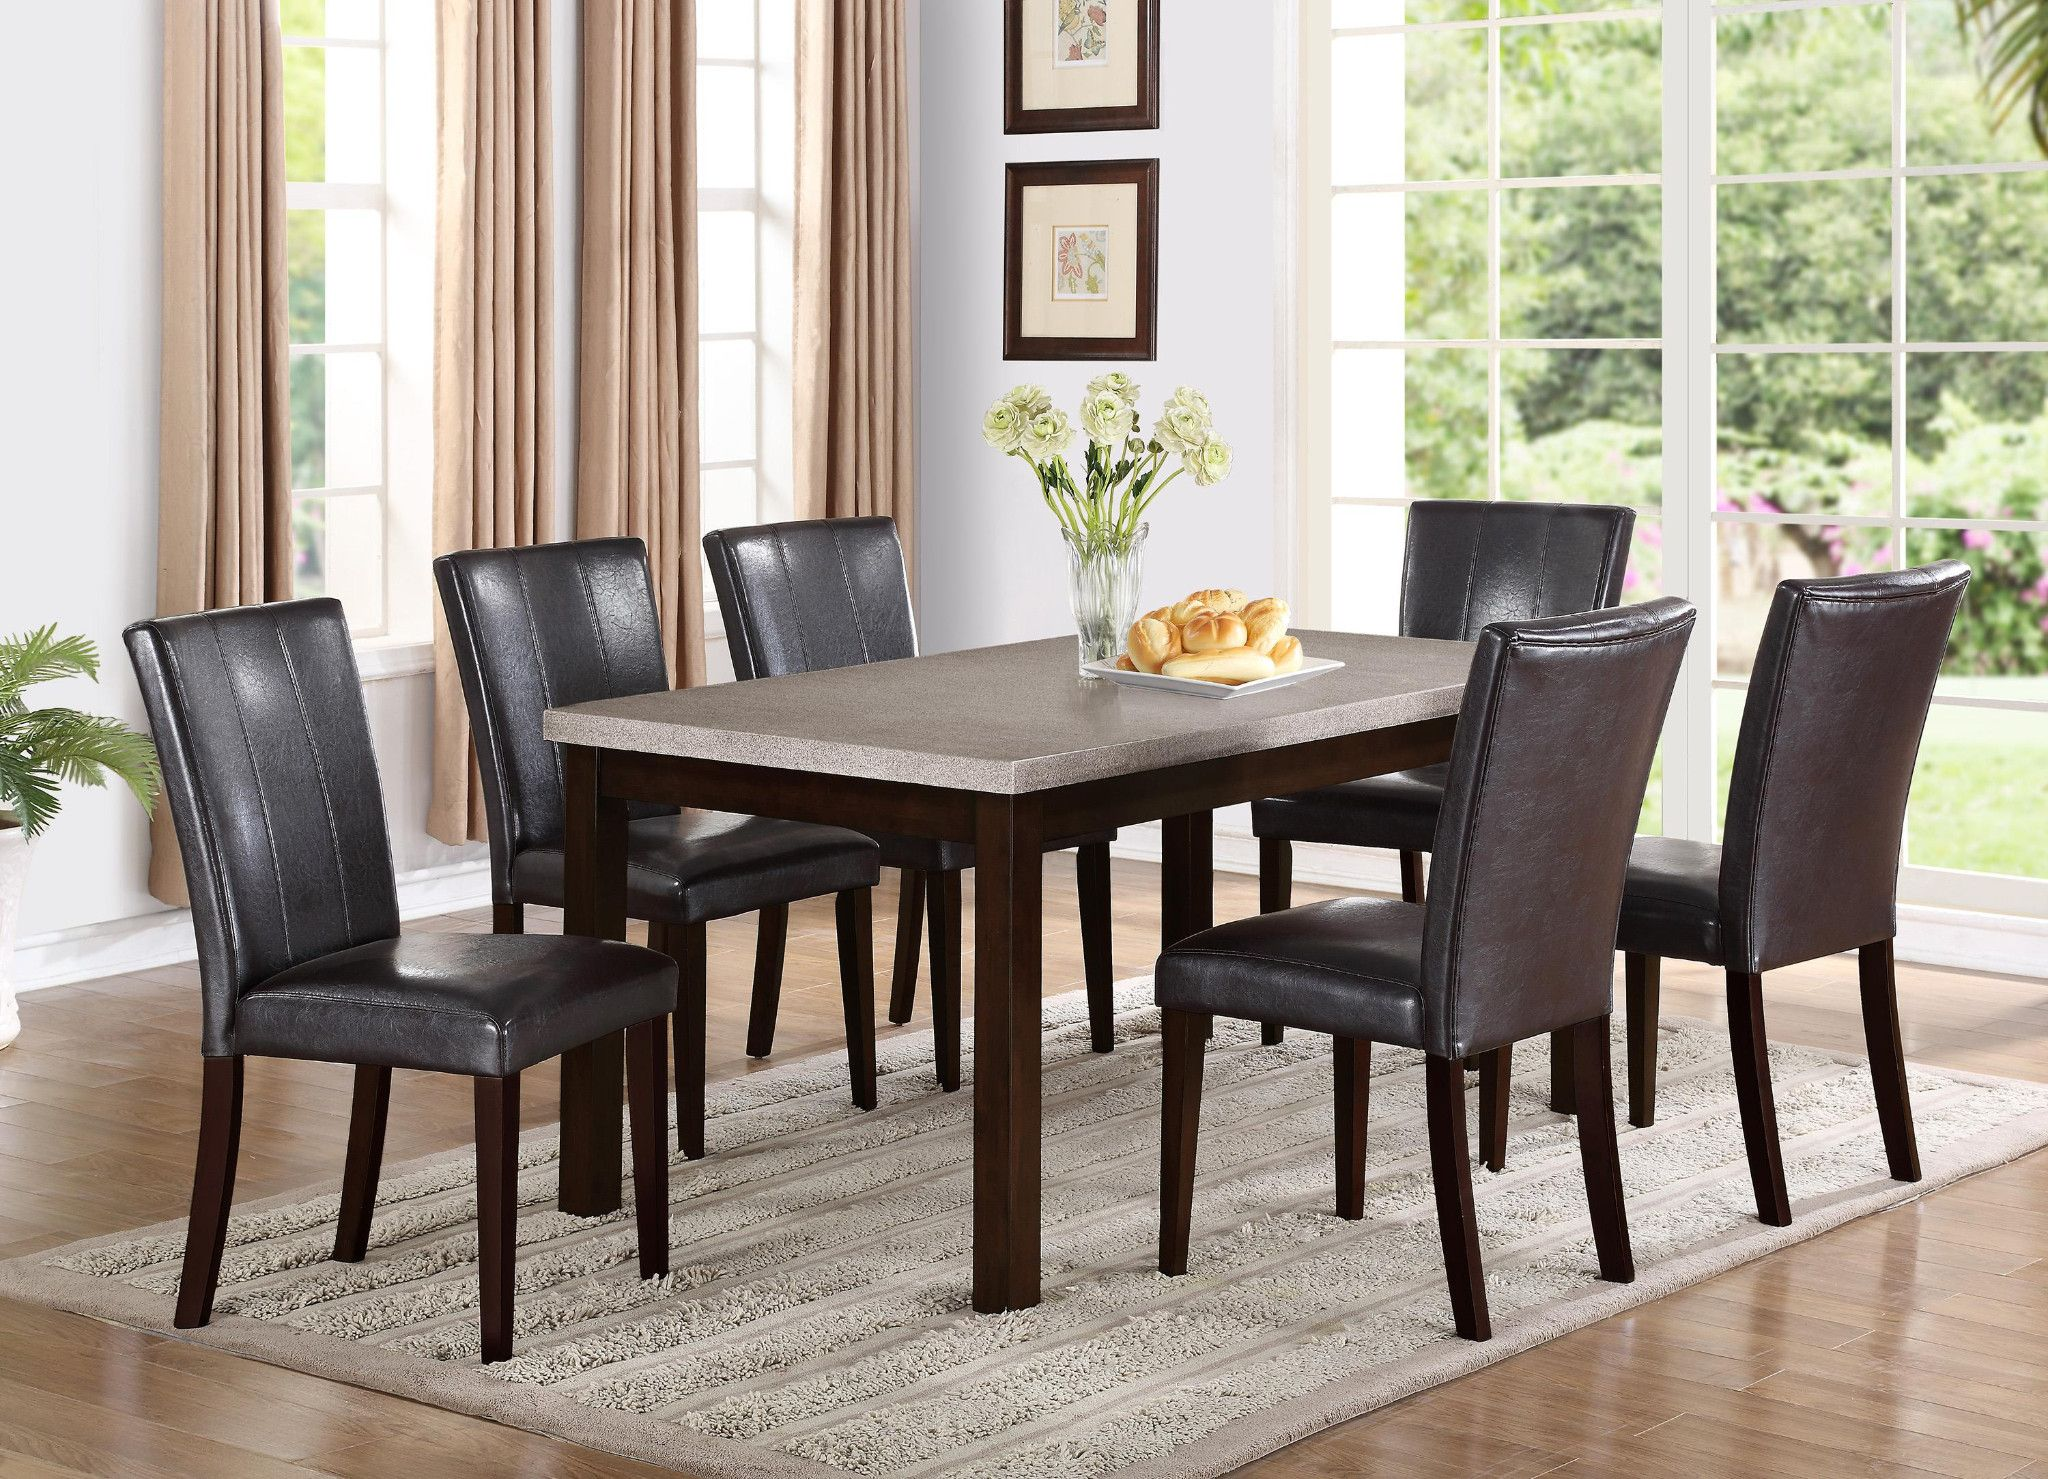 Dining Room Size Dining Room Table Dining Room Table Set Dining Table